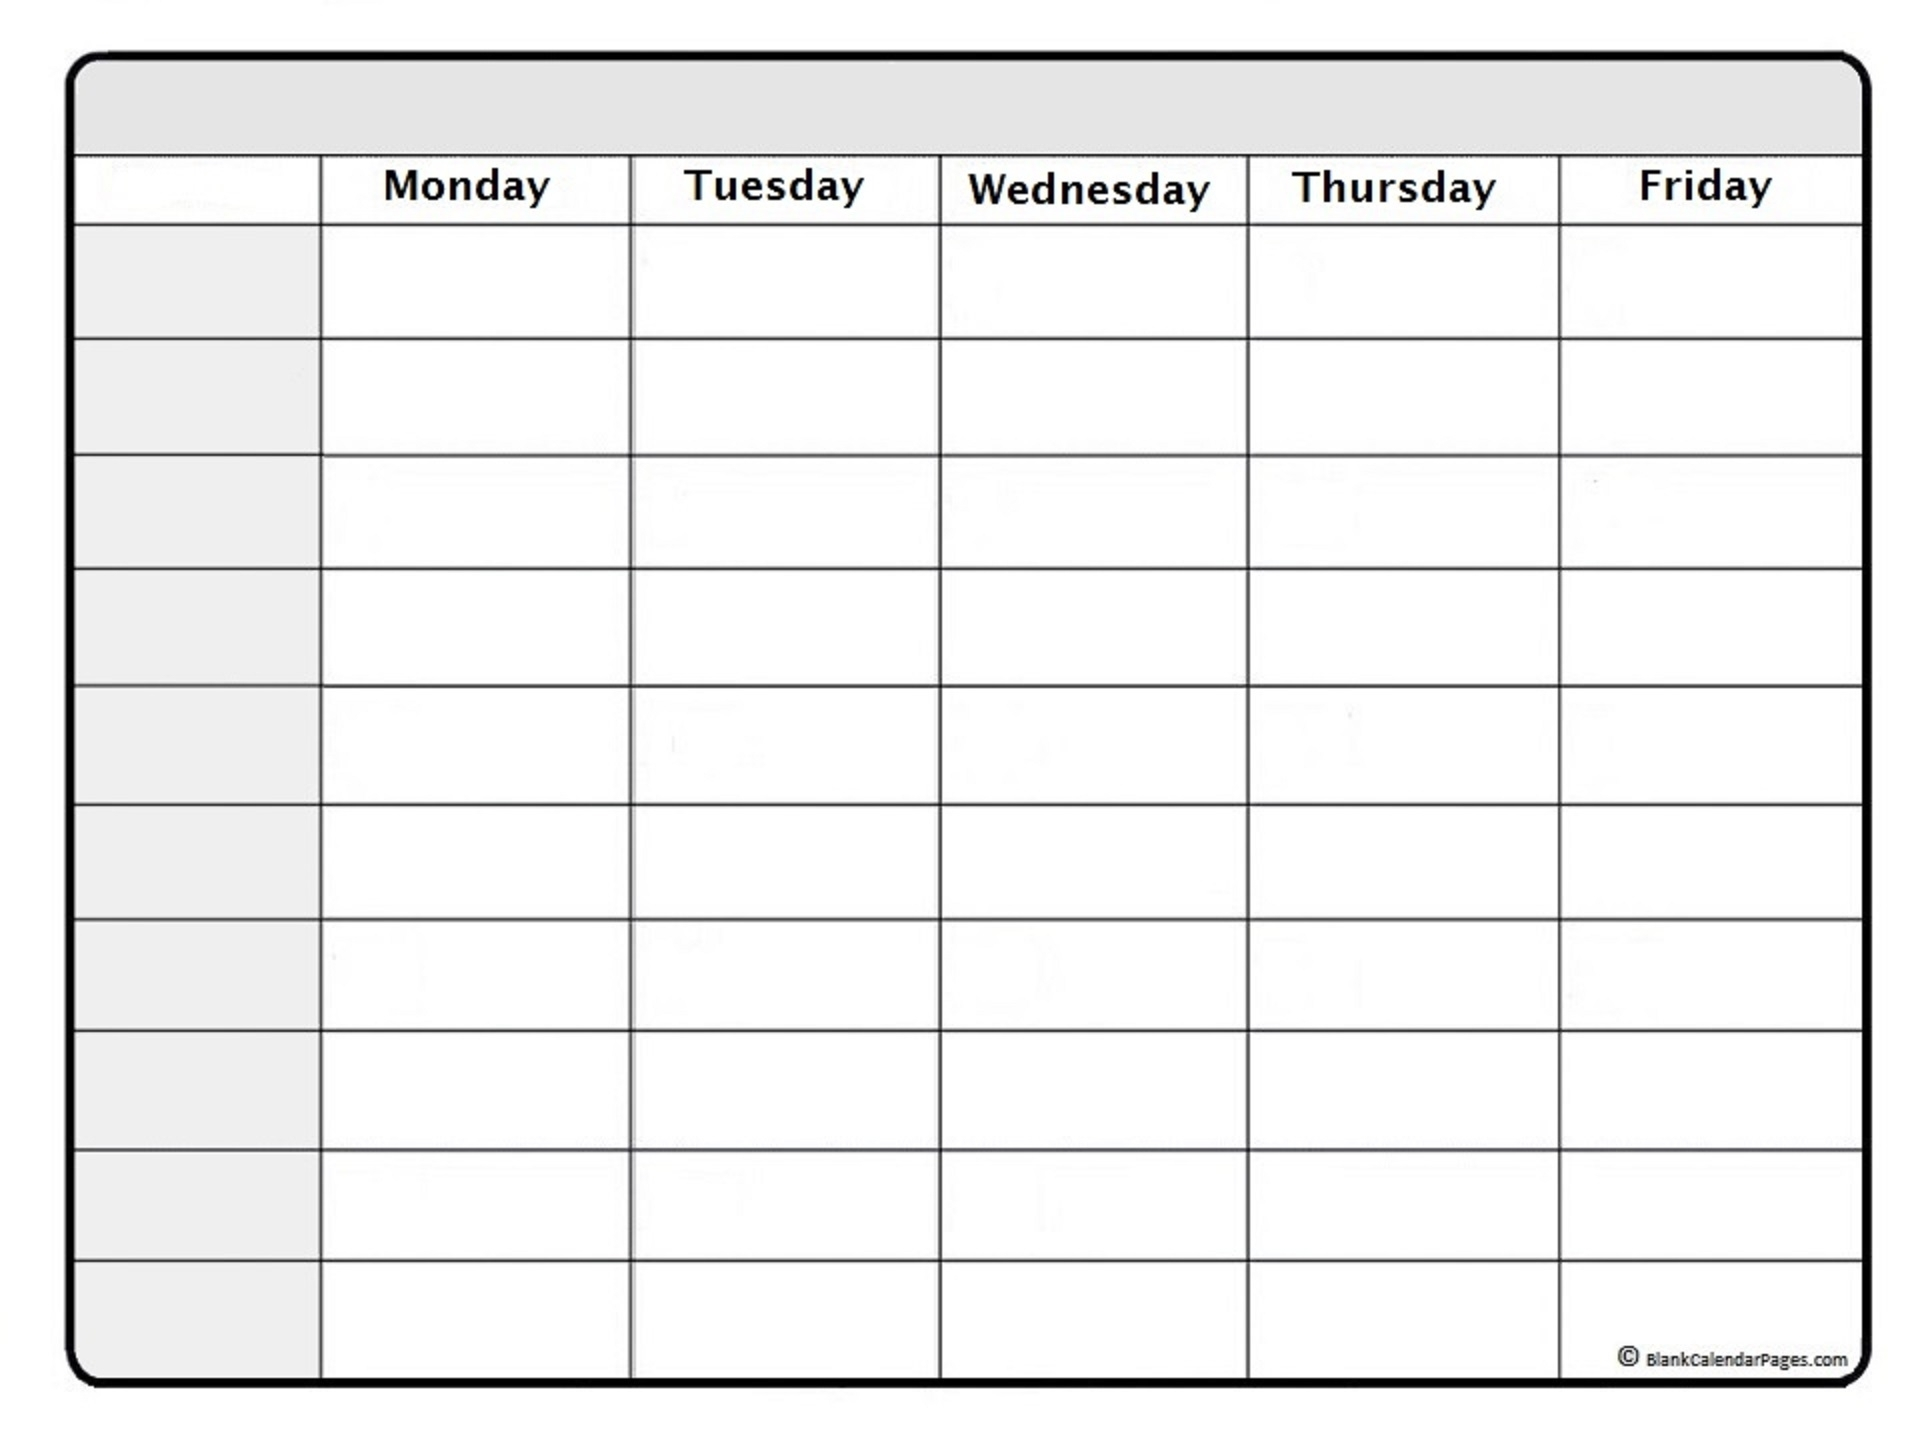 July 2019 Weekly Calendar | July 2019 Weekly Calendar Template within Need A Blank Calendar With Lines